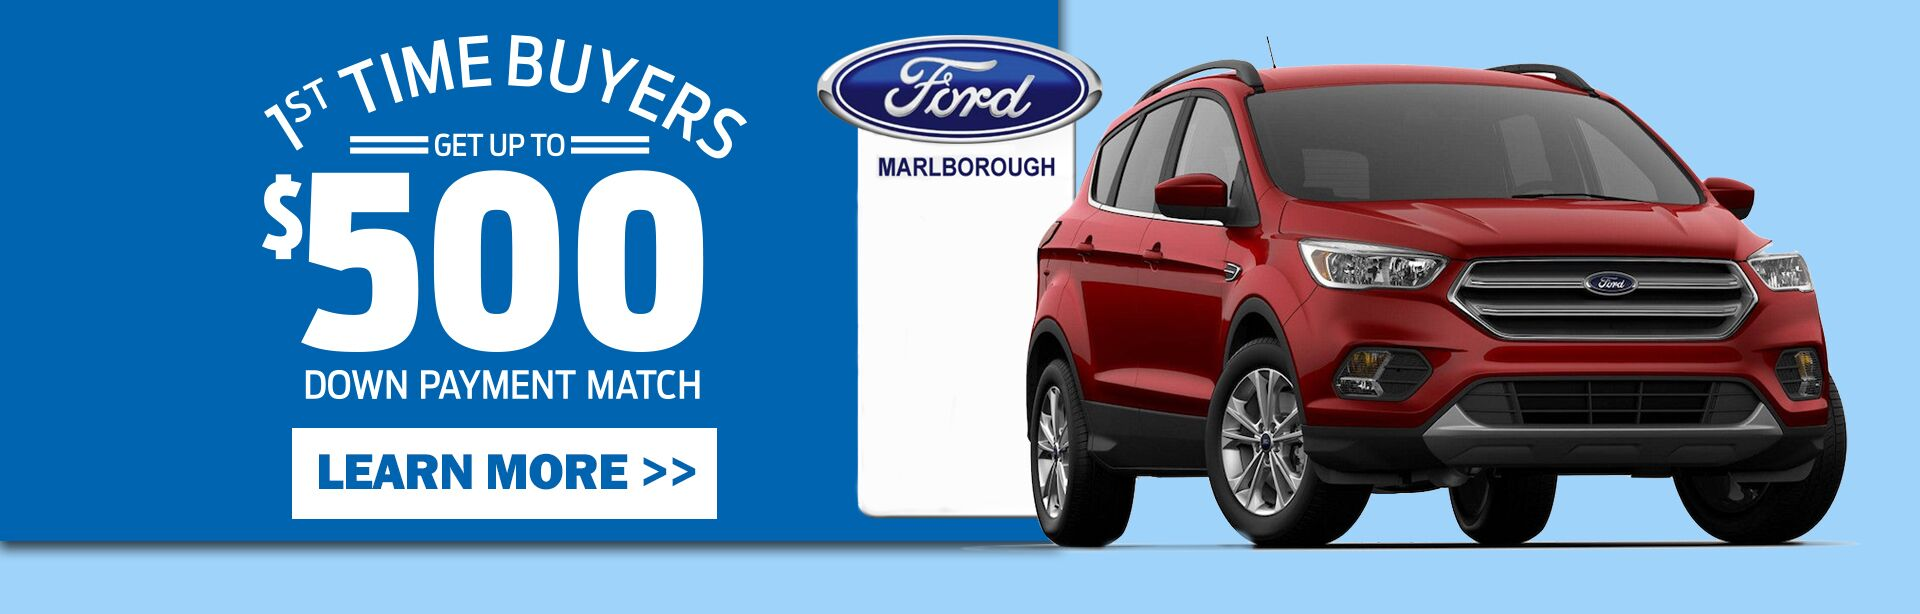 Marlborough Ford's First Time Buyer Program